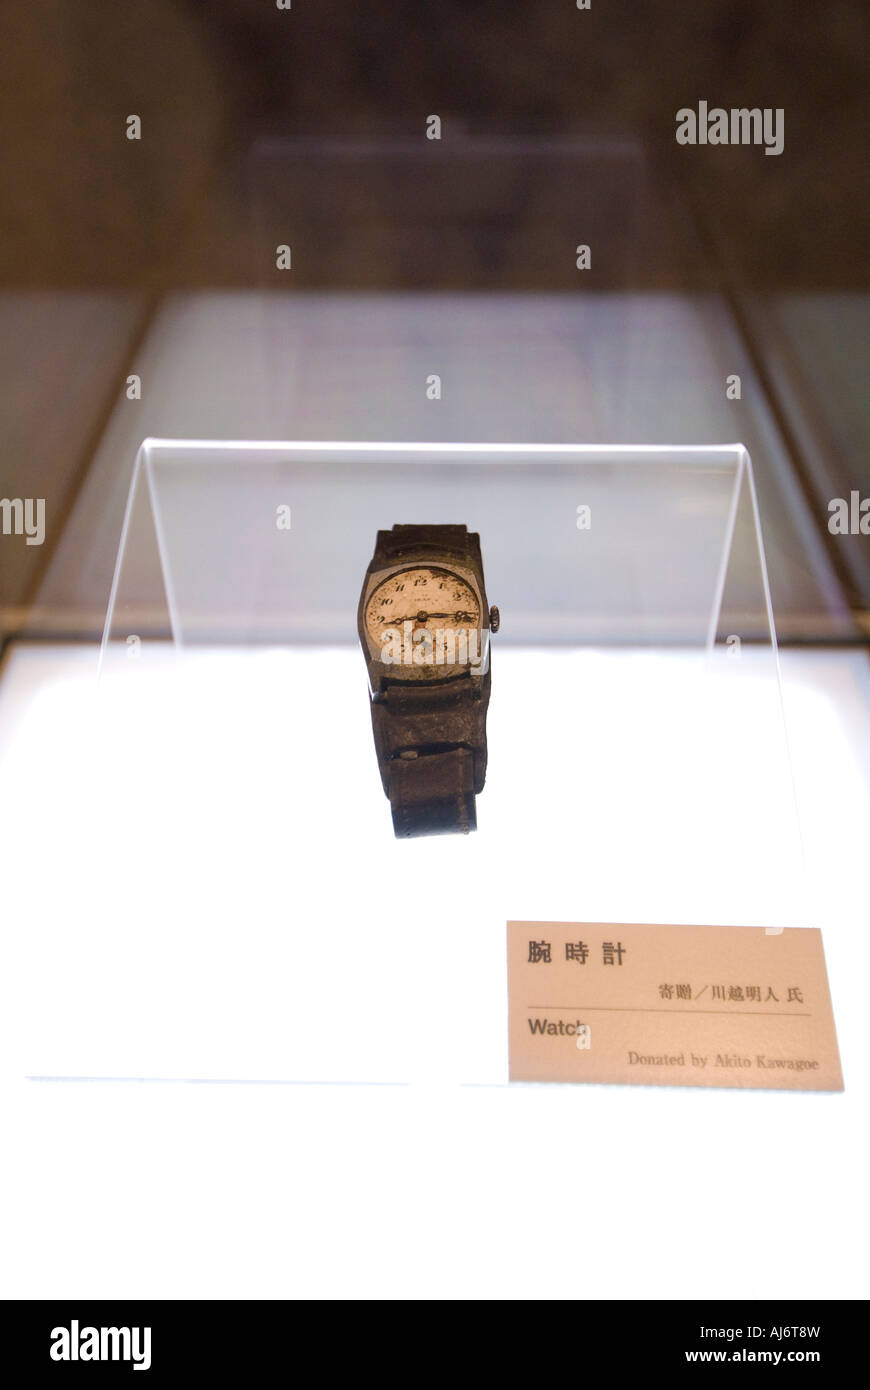 Watch stopped at 8:15 from Nuclear Bomb attack on Hiroshima - Stock Image